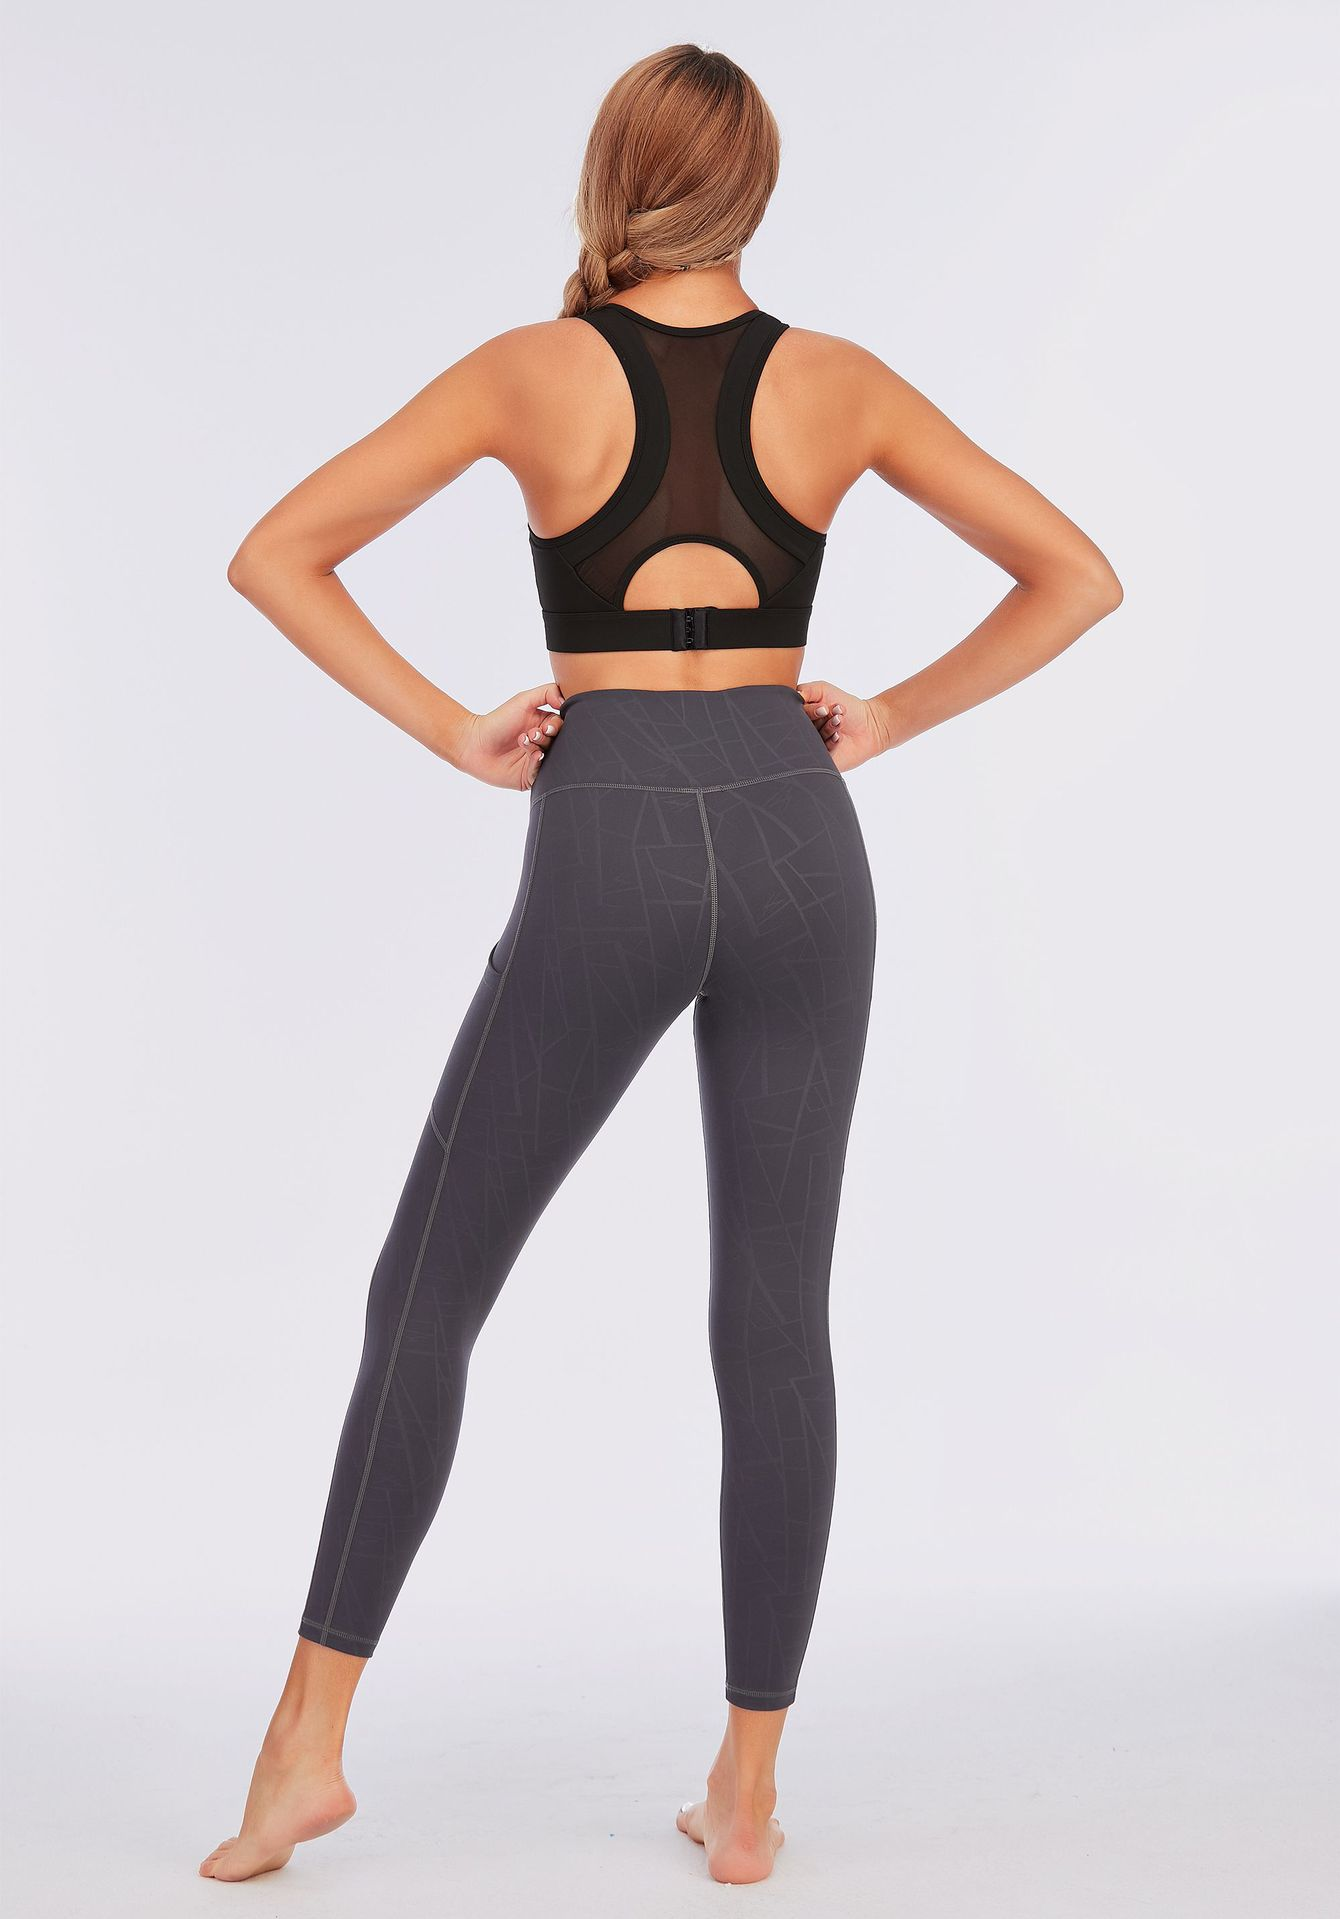 Women Yoga Pants Embossing Pocket Sports Leggings Quick Dry Stretchy Gym Tights Women Running Trousers Workout Fitness Clothes Sport9s